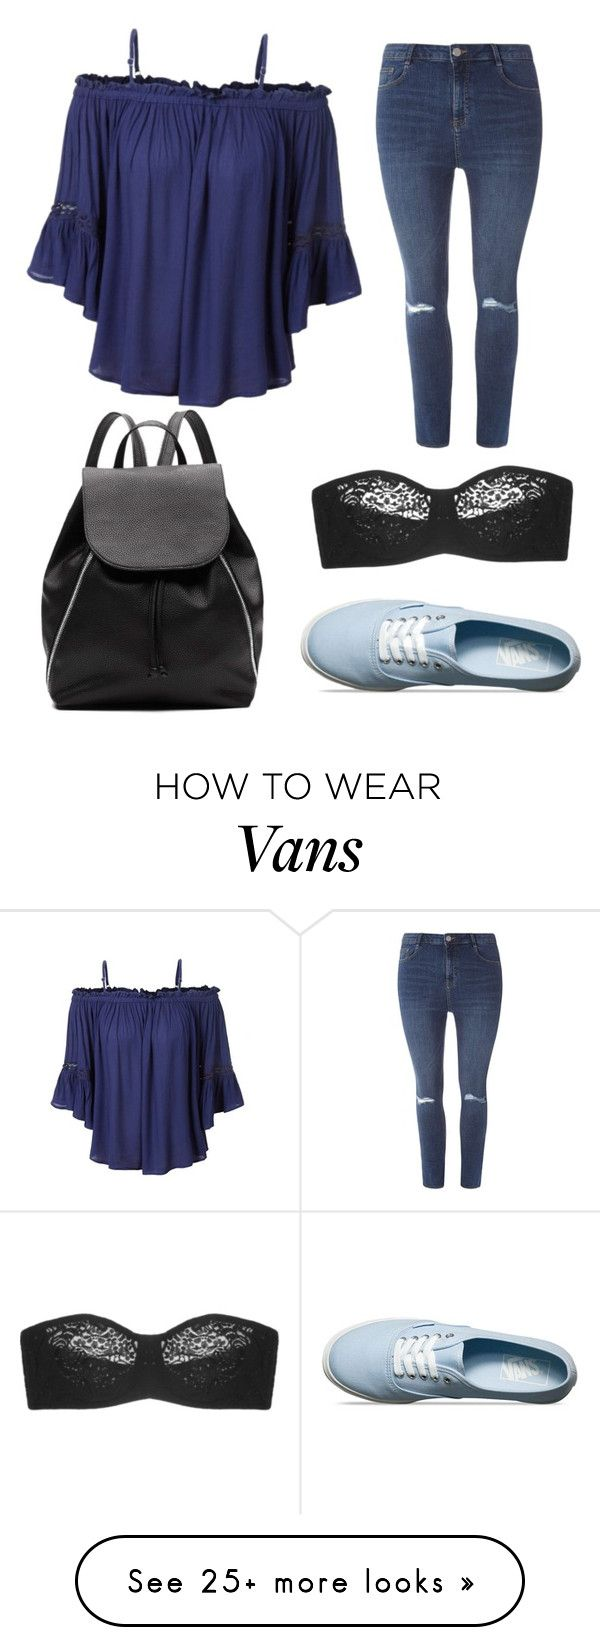 """Untitled #47"" by bunnygirl21 on Polyvore featuring LE3NO, Dorothy Perkins, Vans, Wacoal and Witchery"